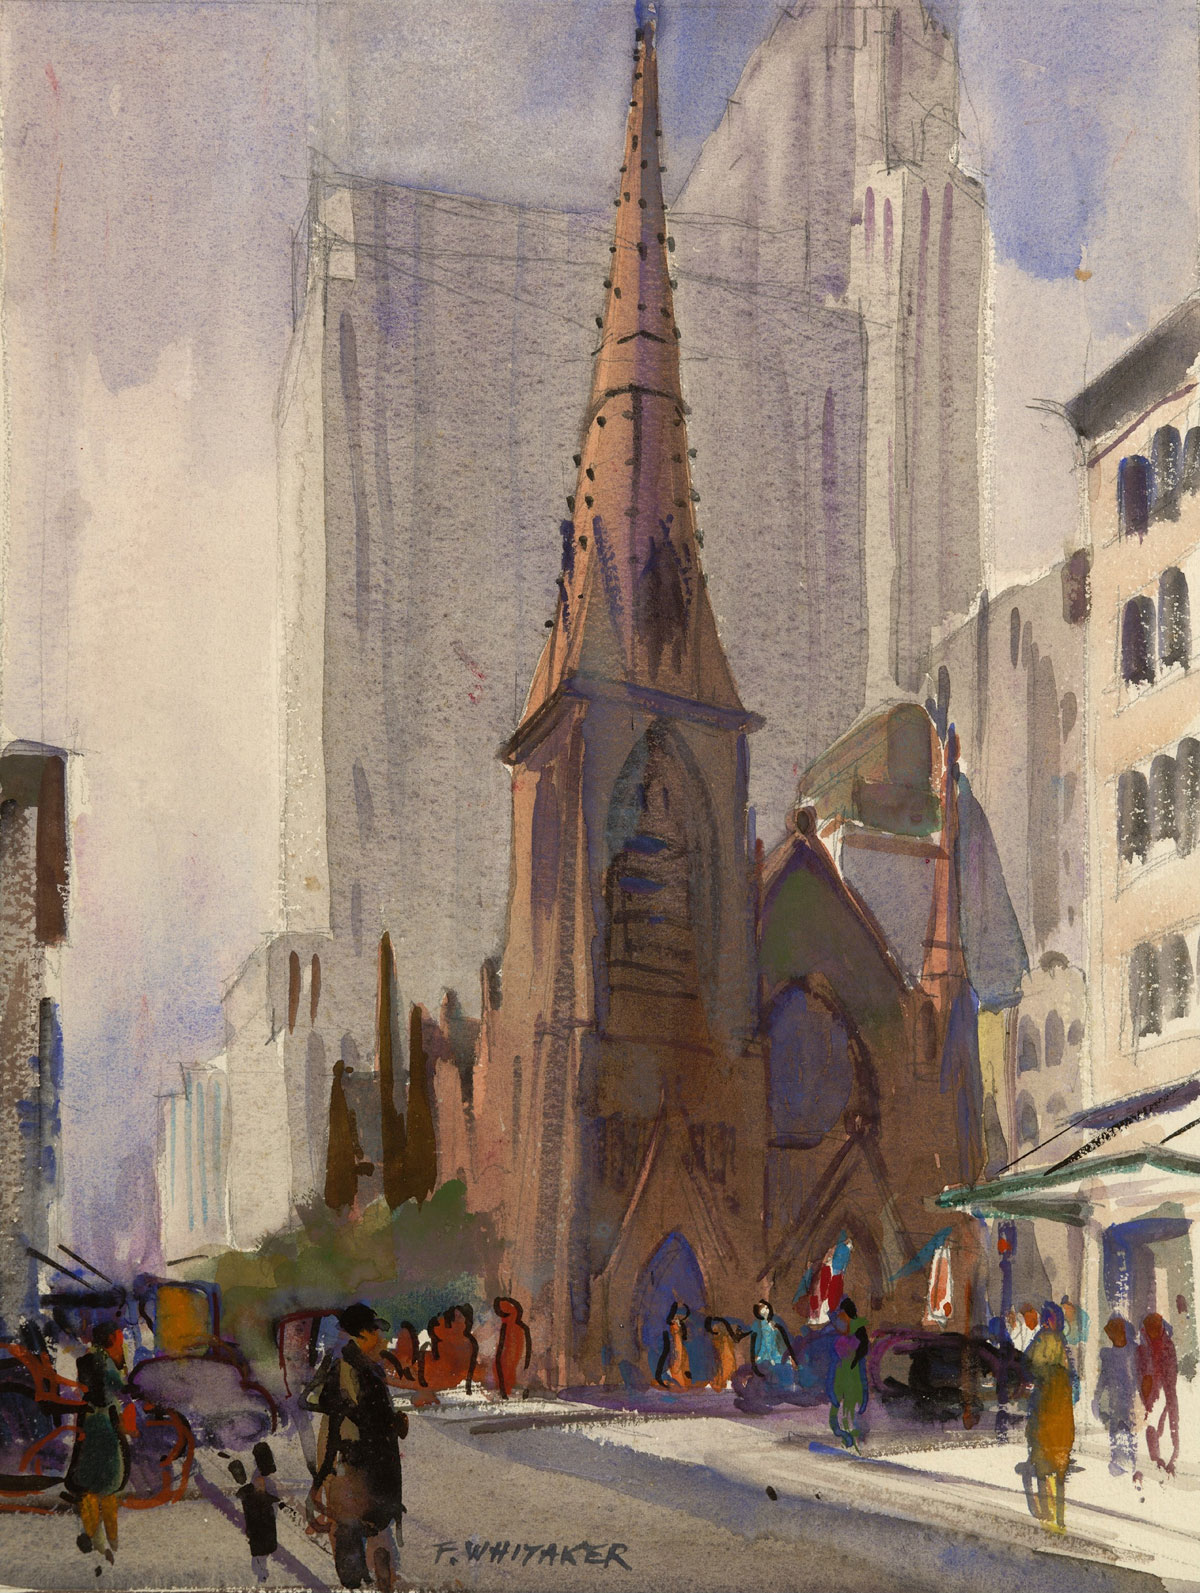 """Fifth Avenue Church"" 1942, © Frederic Whitaker 15x11.25 inches"